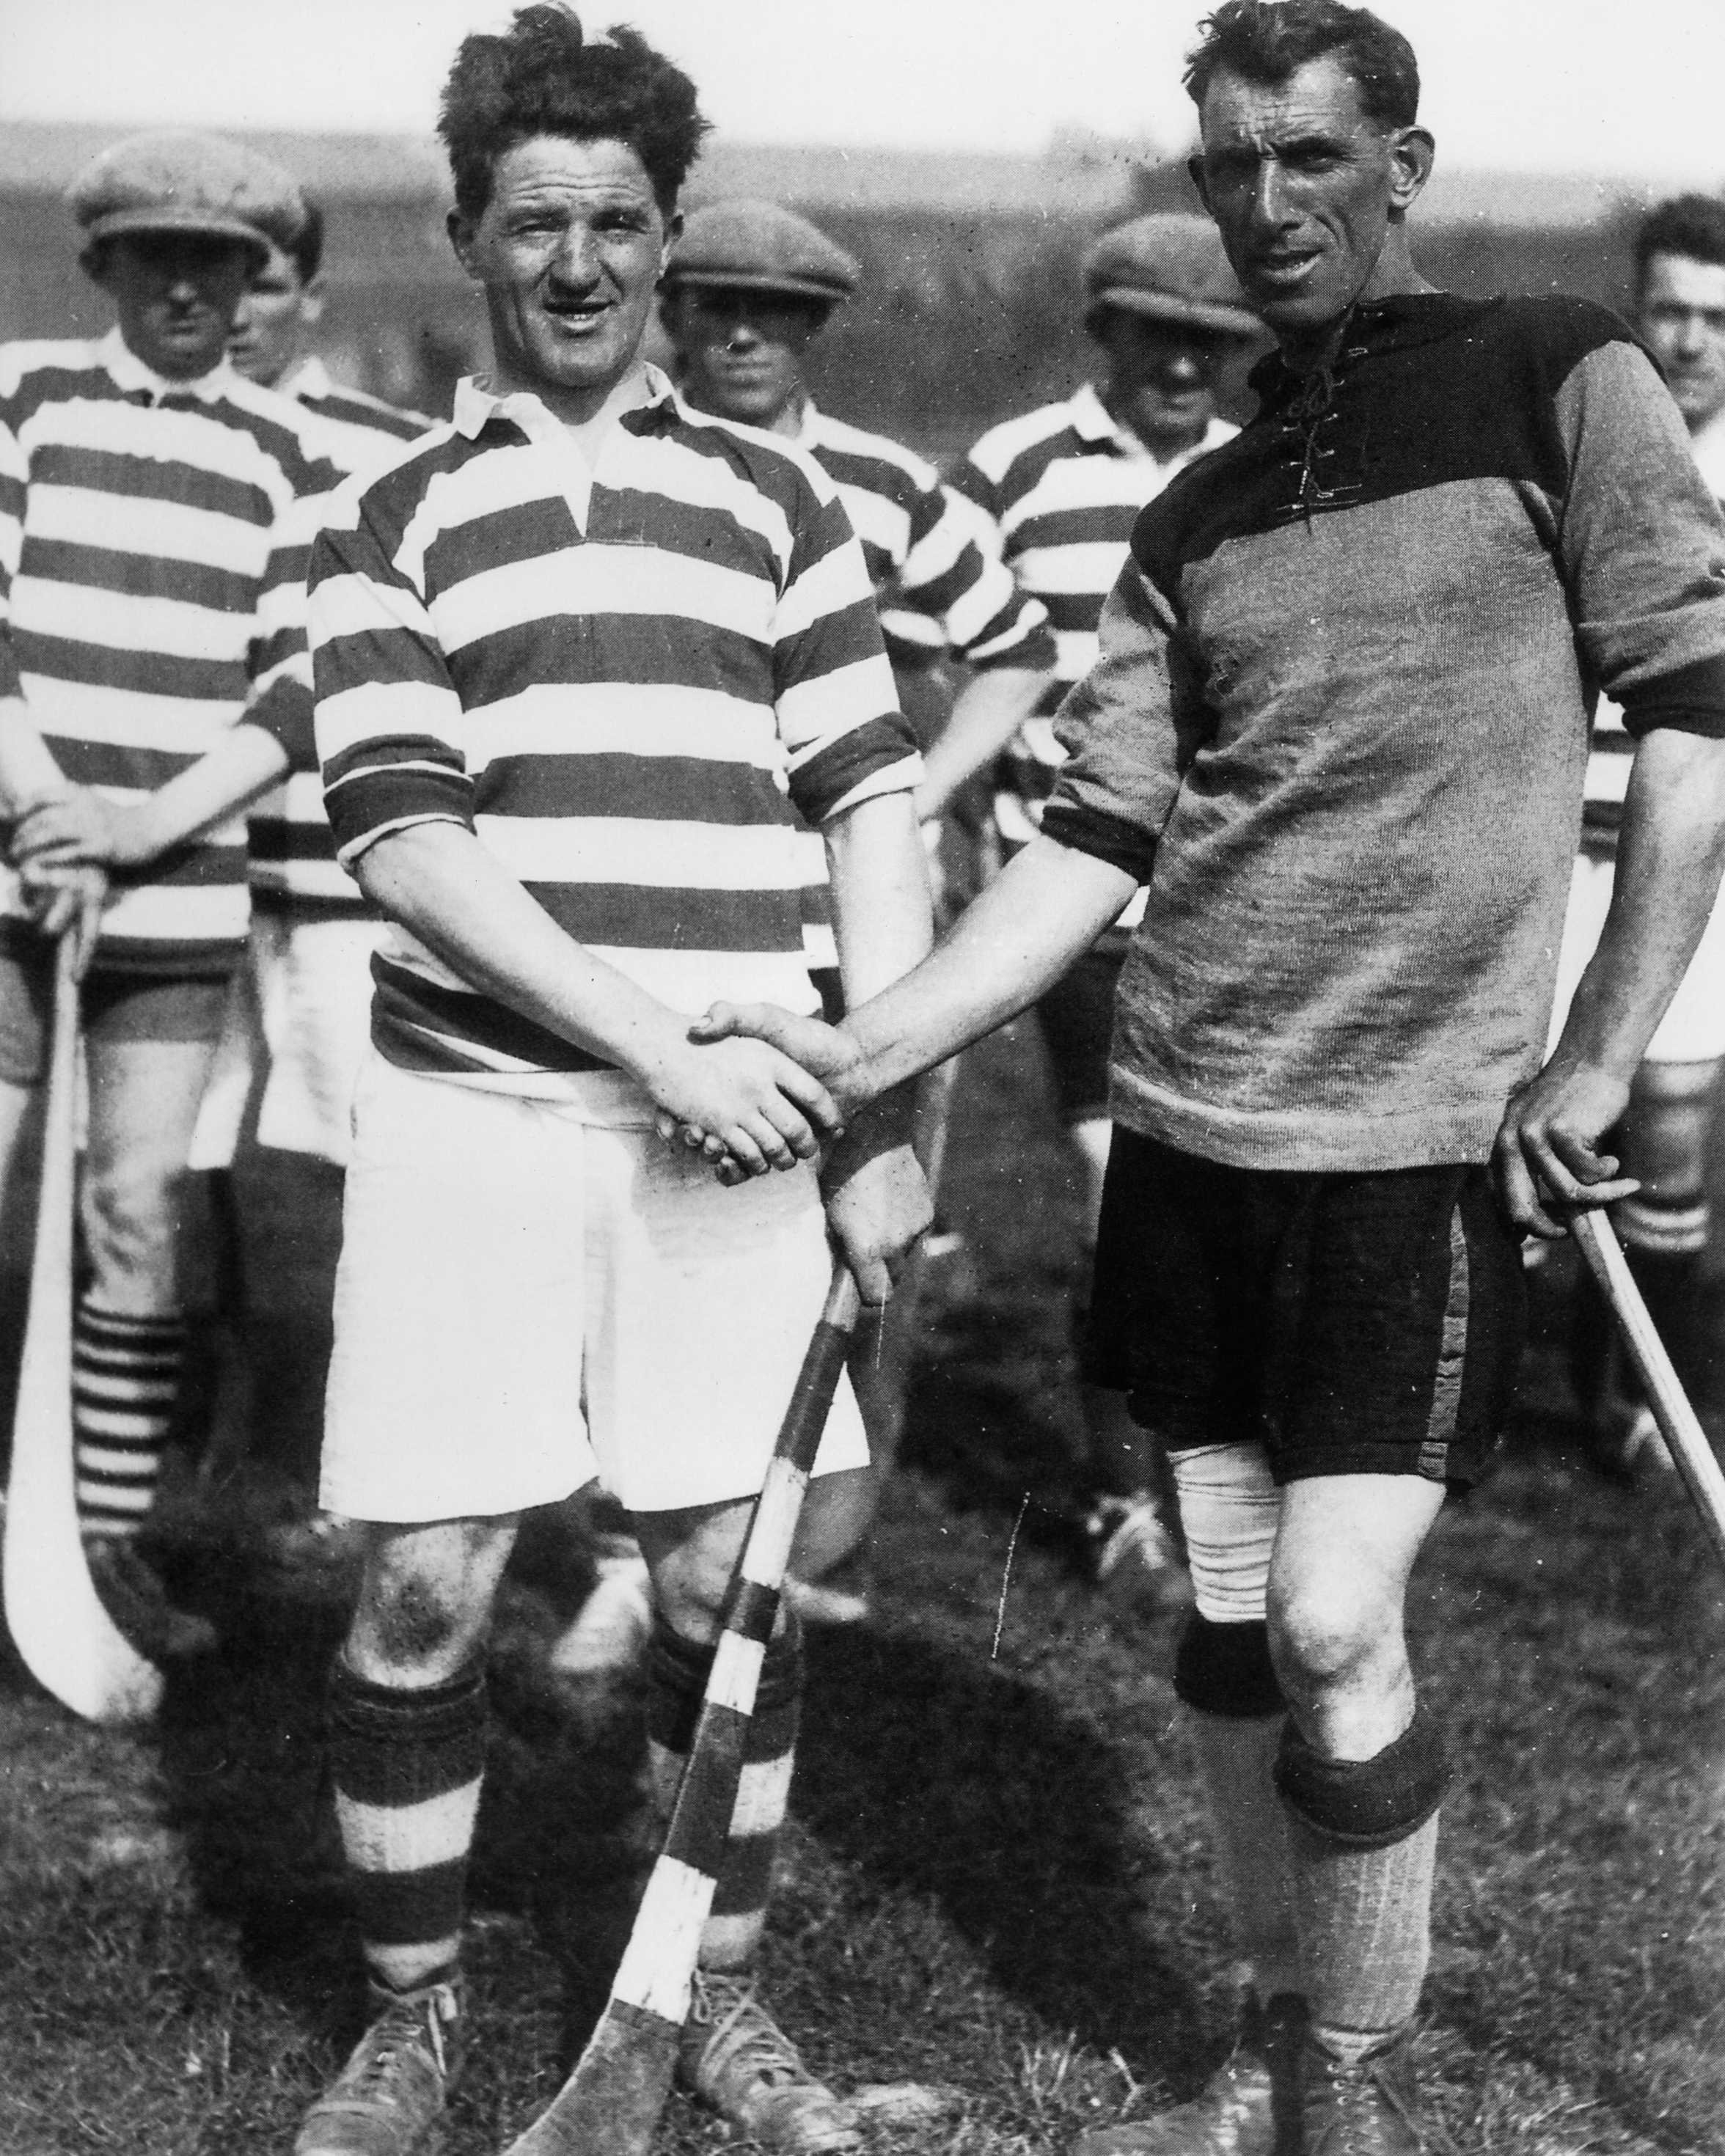 1923 Hurling All-Ireland Final Captains